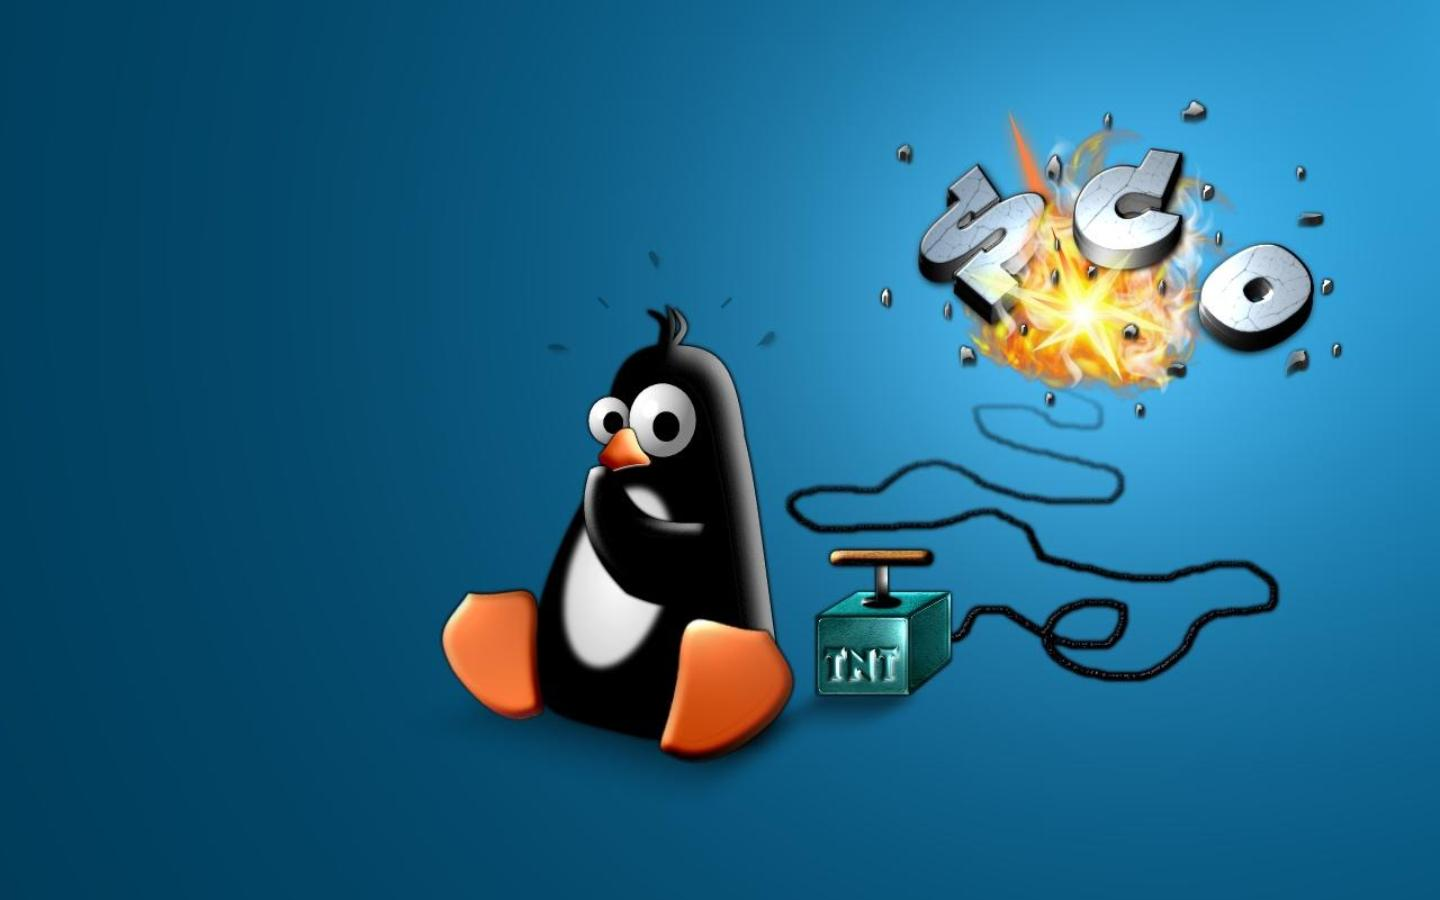 linux hd wallpapers funny linux wallpapers funny linux wallpapers 1440x900